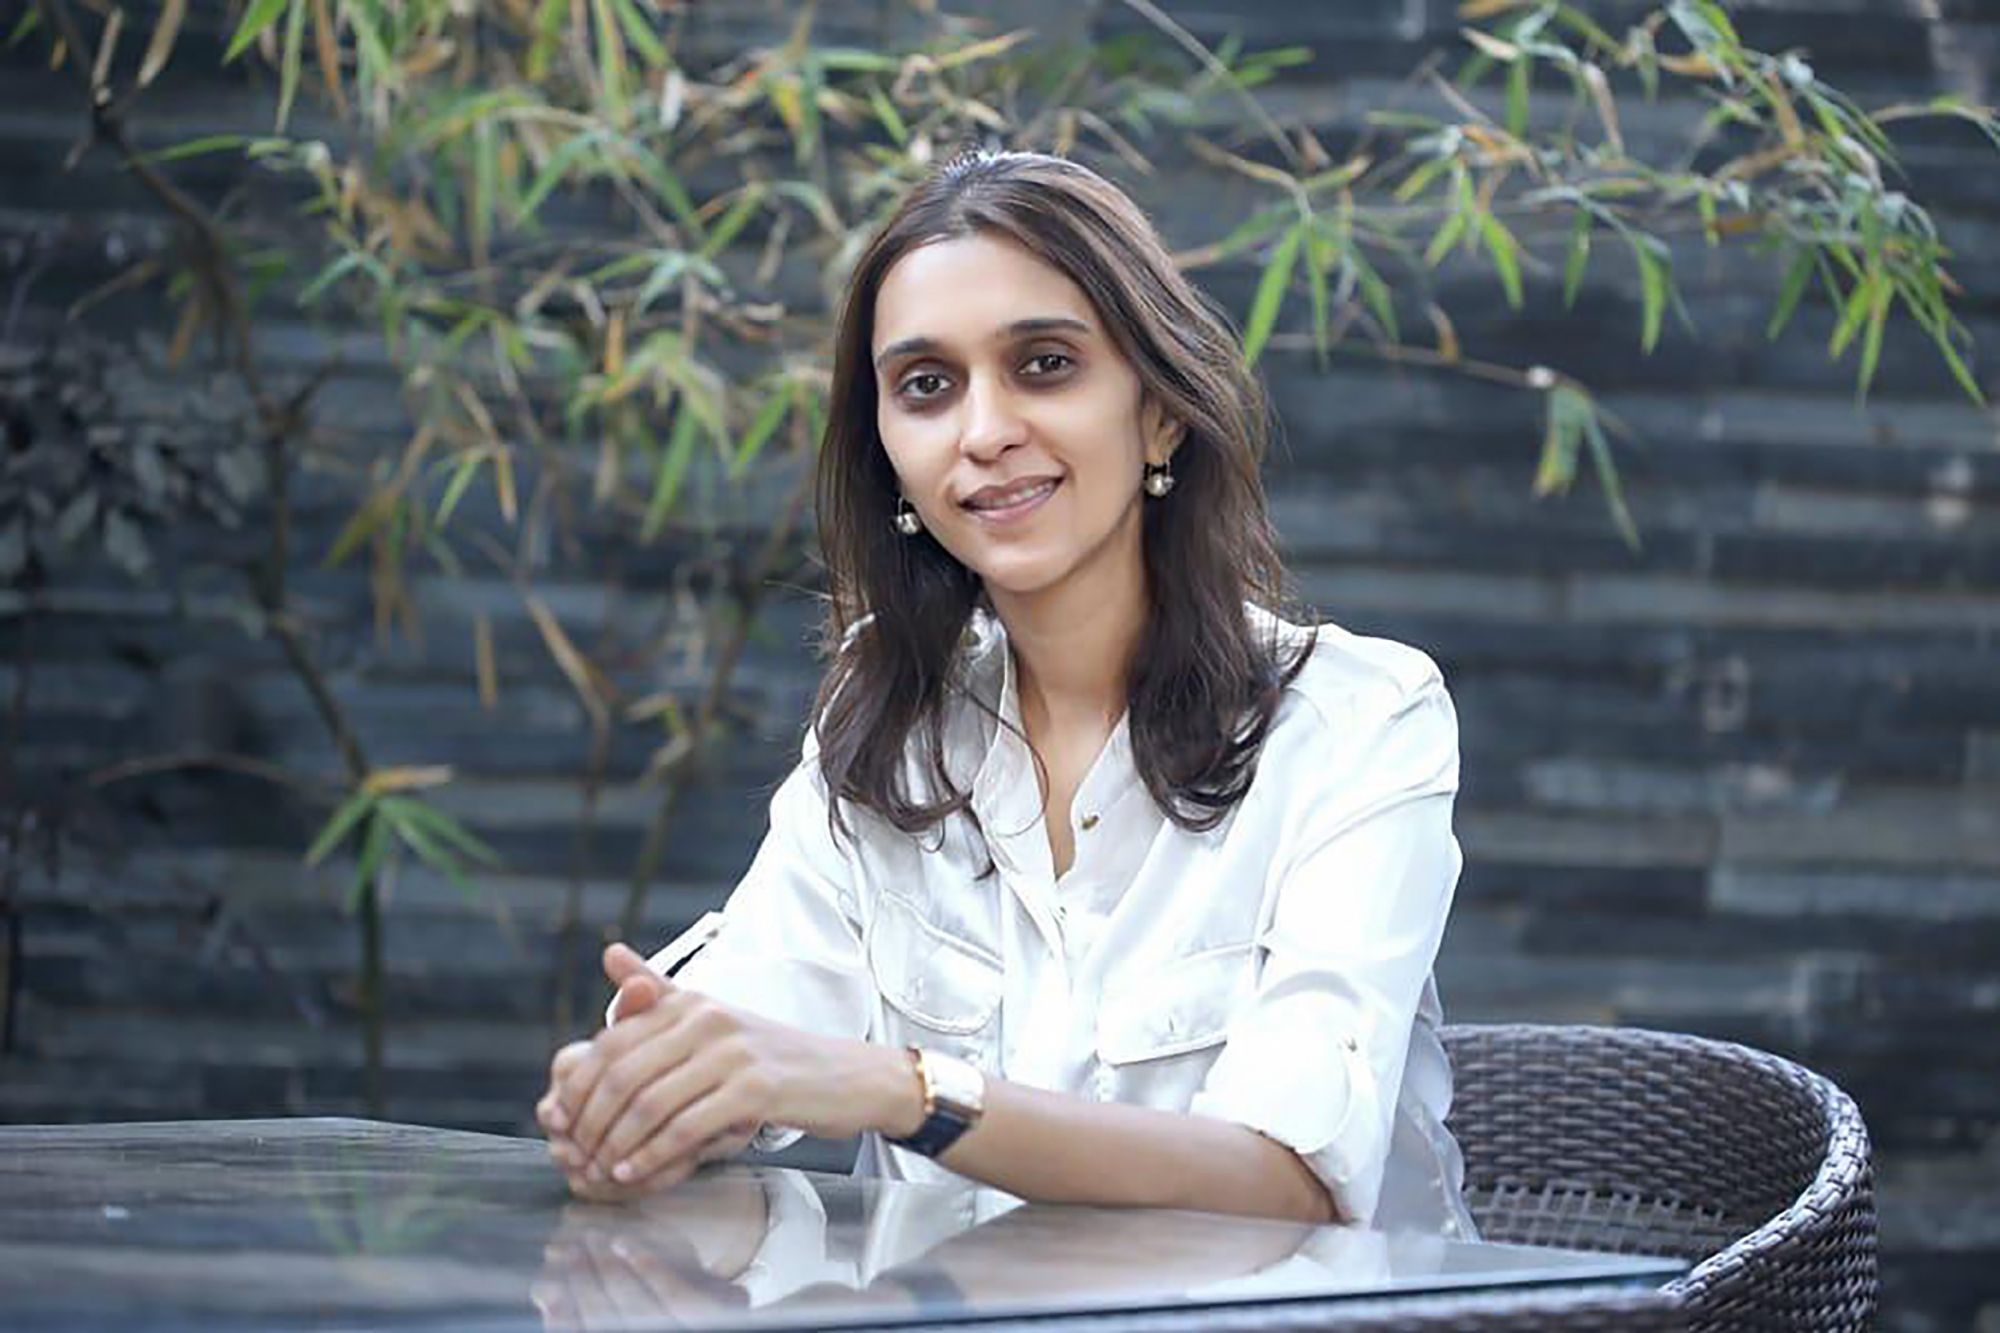 For This Woman Entrepreneur, Architecture Is No Less Than Meditation